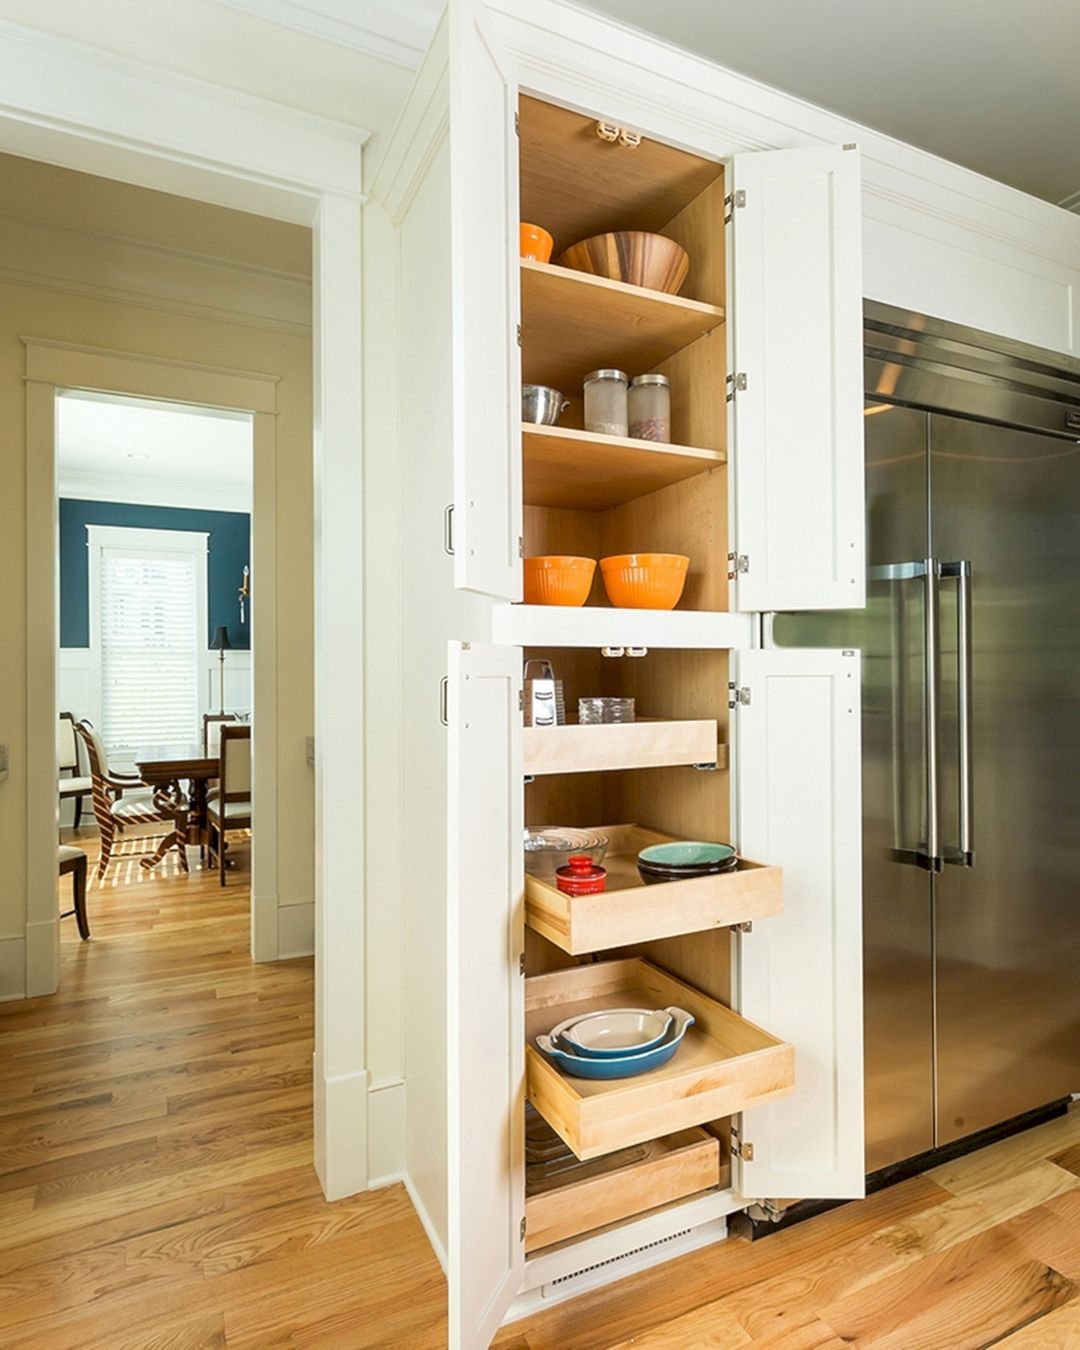 15 Simple Kitchen Cabinet Ideas That Inspire You Teracee Tall Kitchen Pantry Cabinet Simple Kitchen Cabinets Tall Kitchen Cabinets